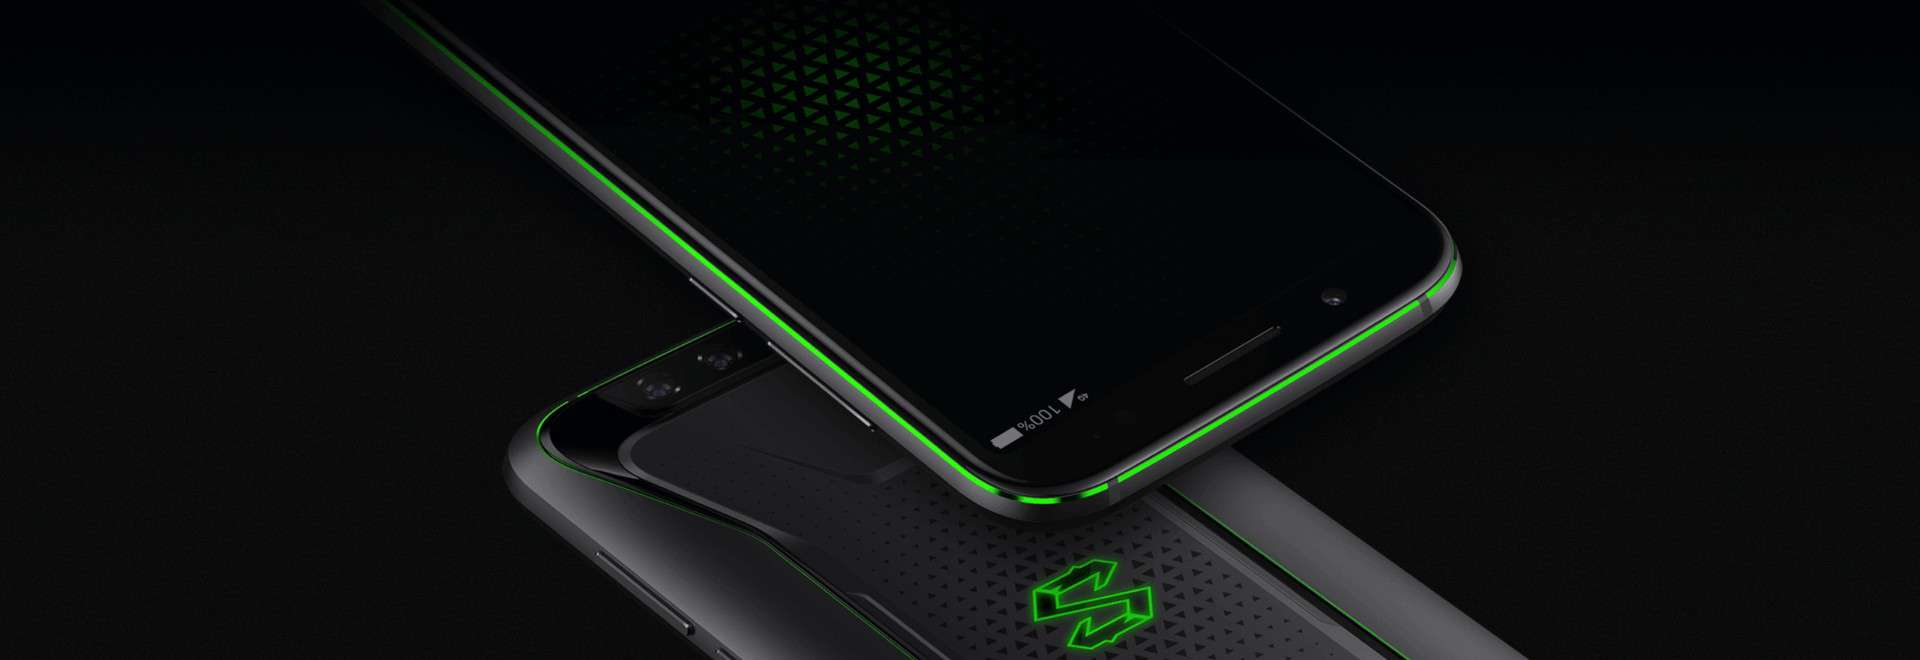 Black Shark Gaming smartphone official image 5